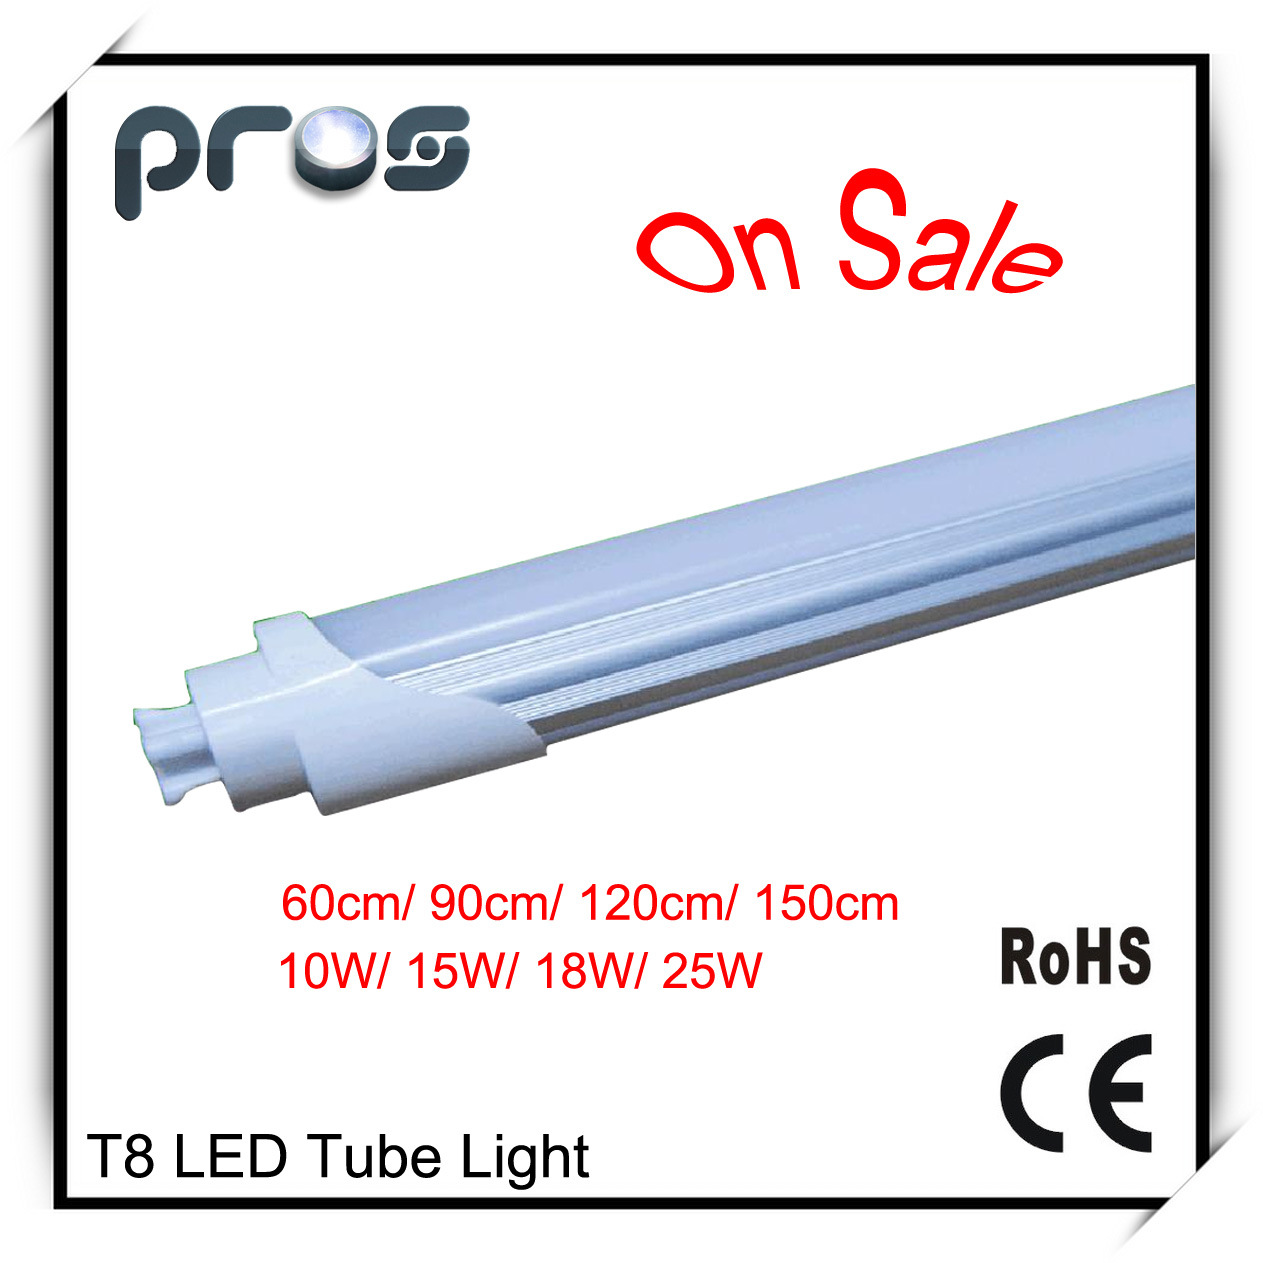 25W 1.5m LED Tube T8 Tube Light on Sale